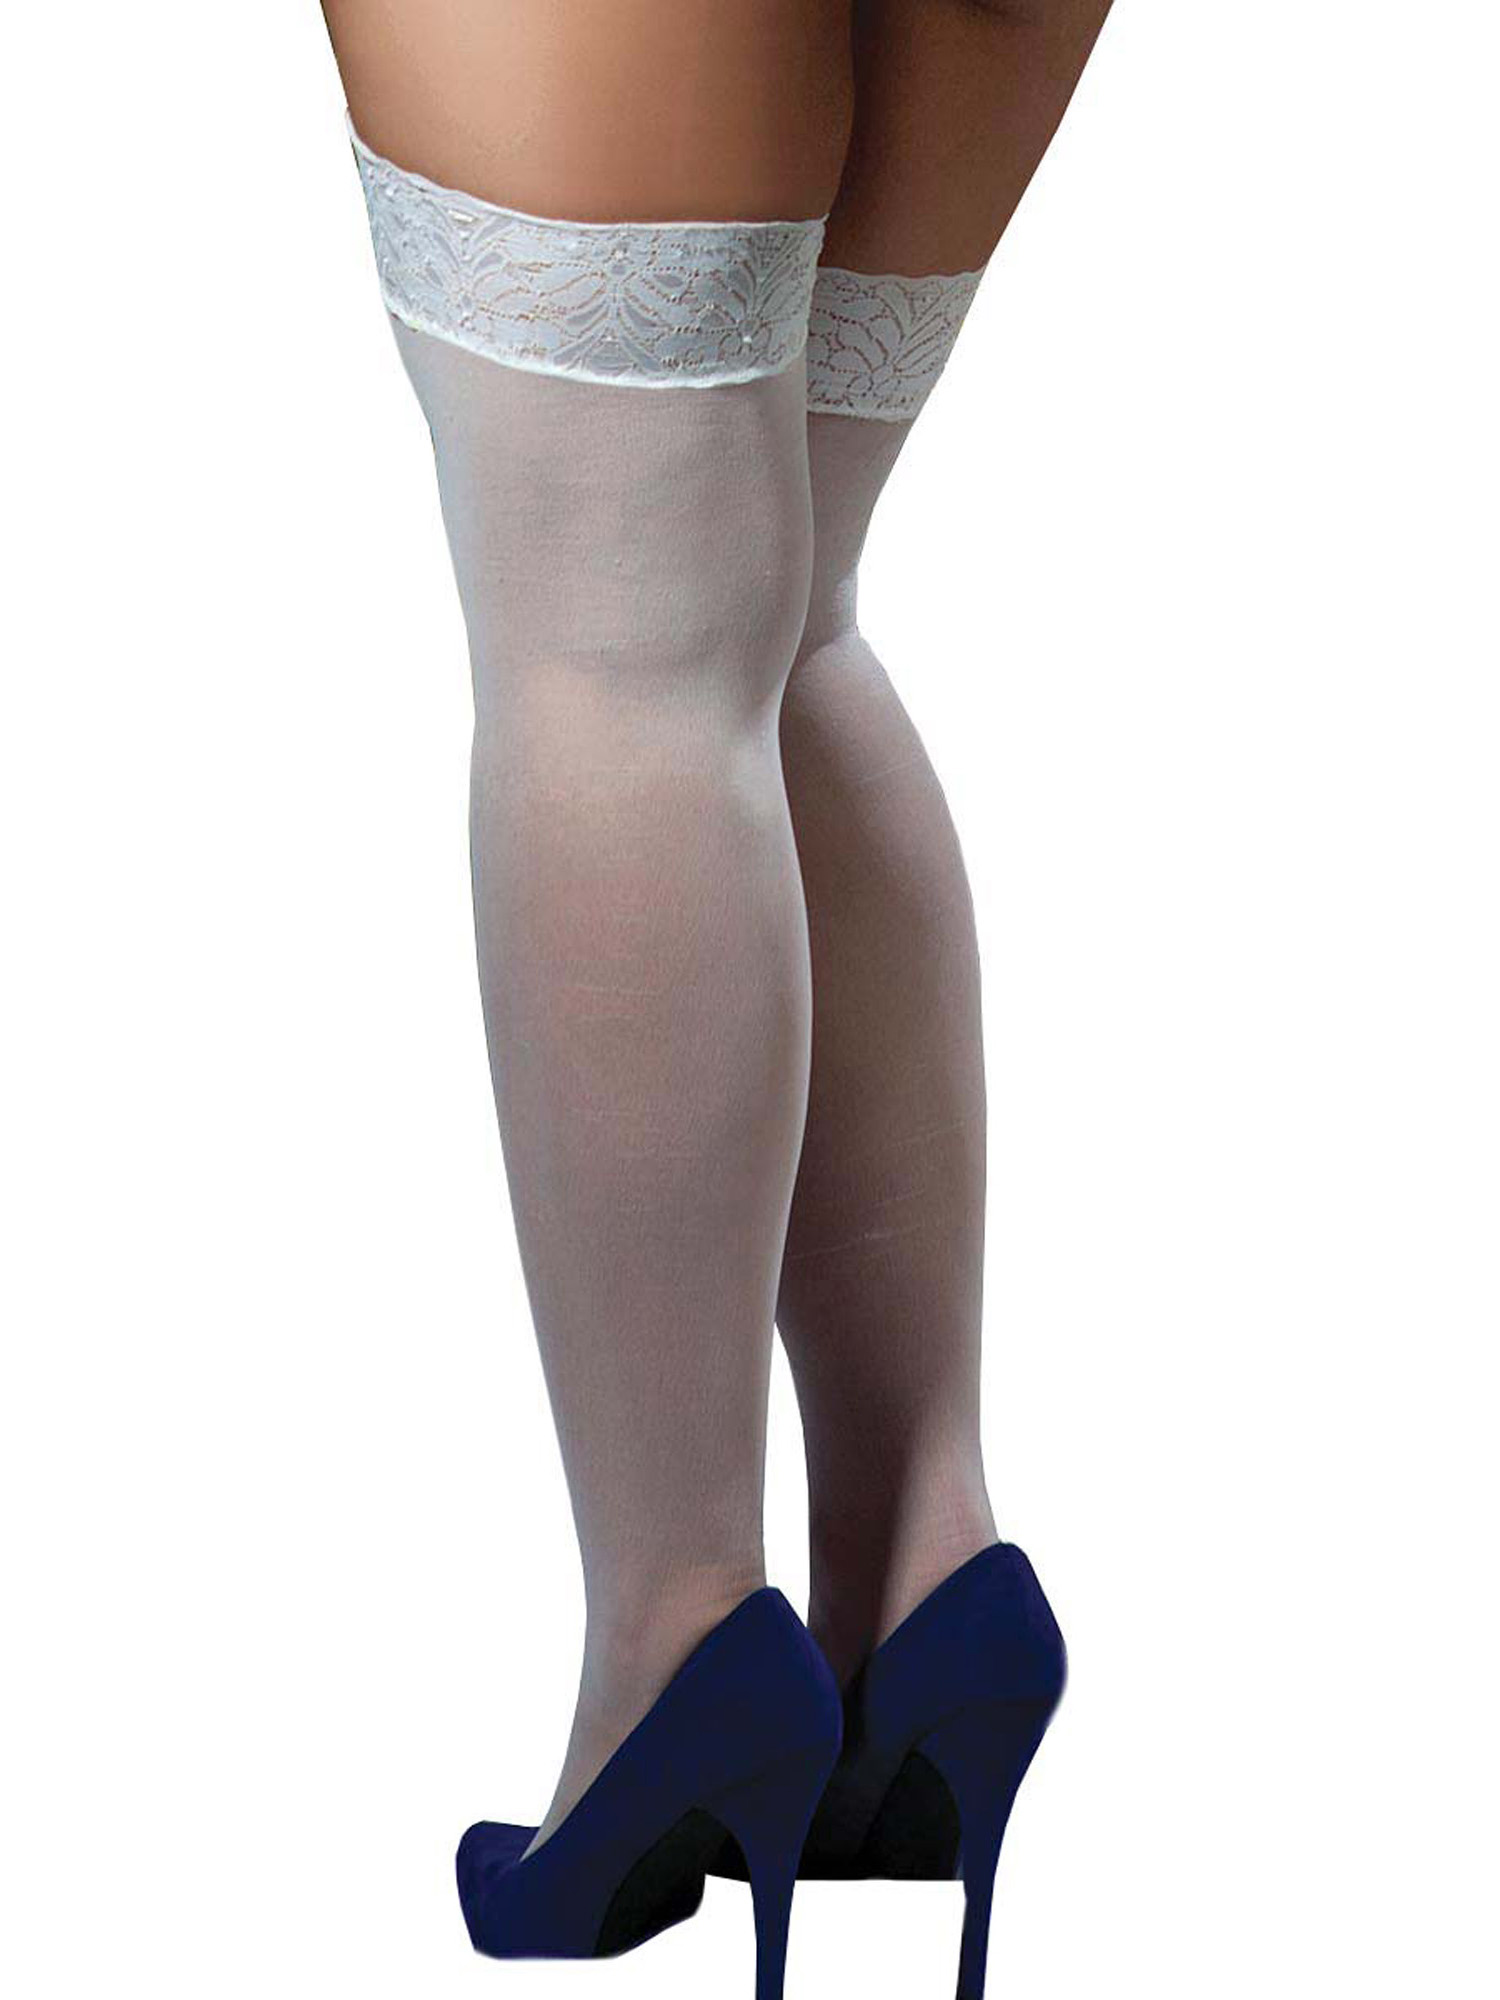 Plus-Size-Full-Figure-Sheer-Lace-Top-Thigh-High-Stockings thumbnail 11